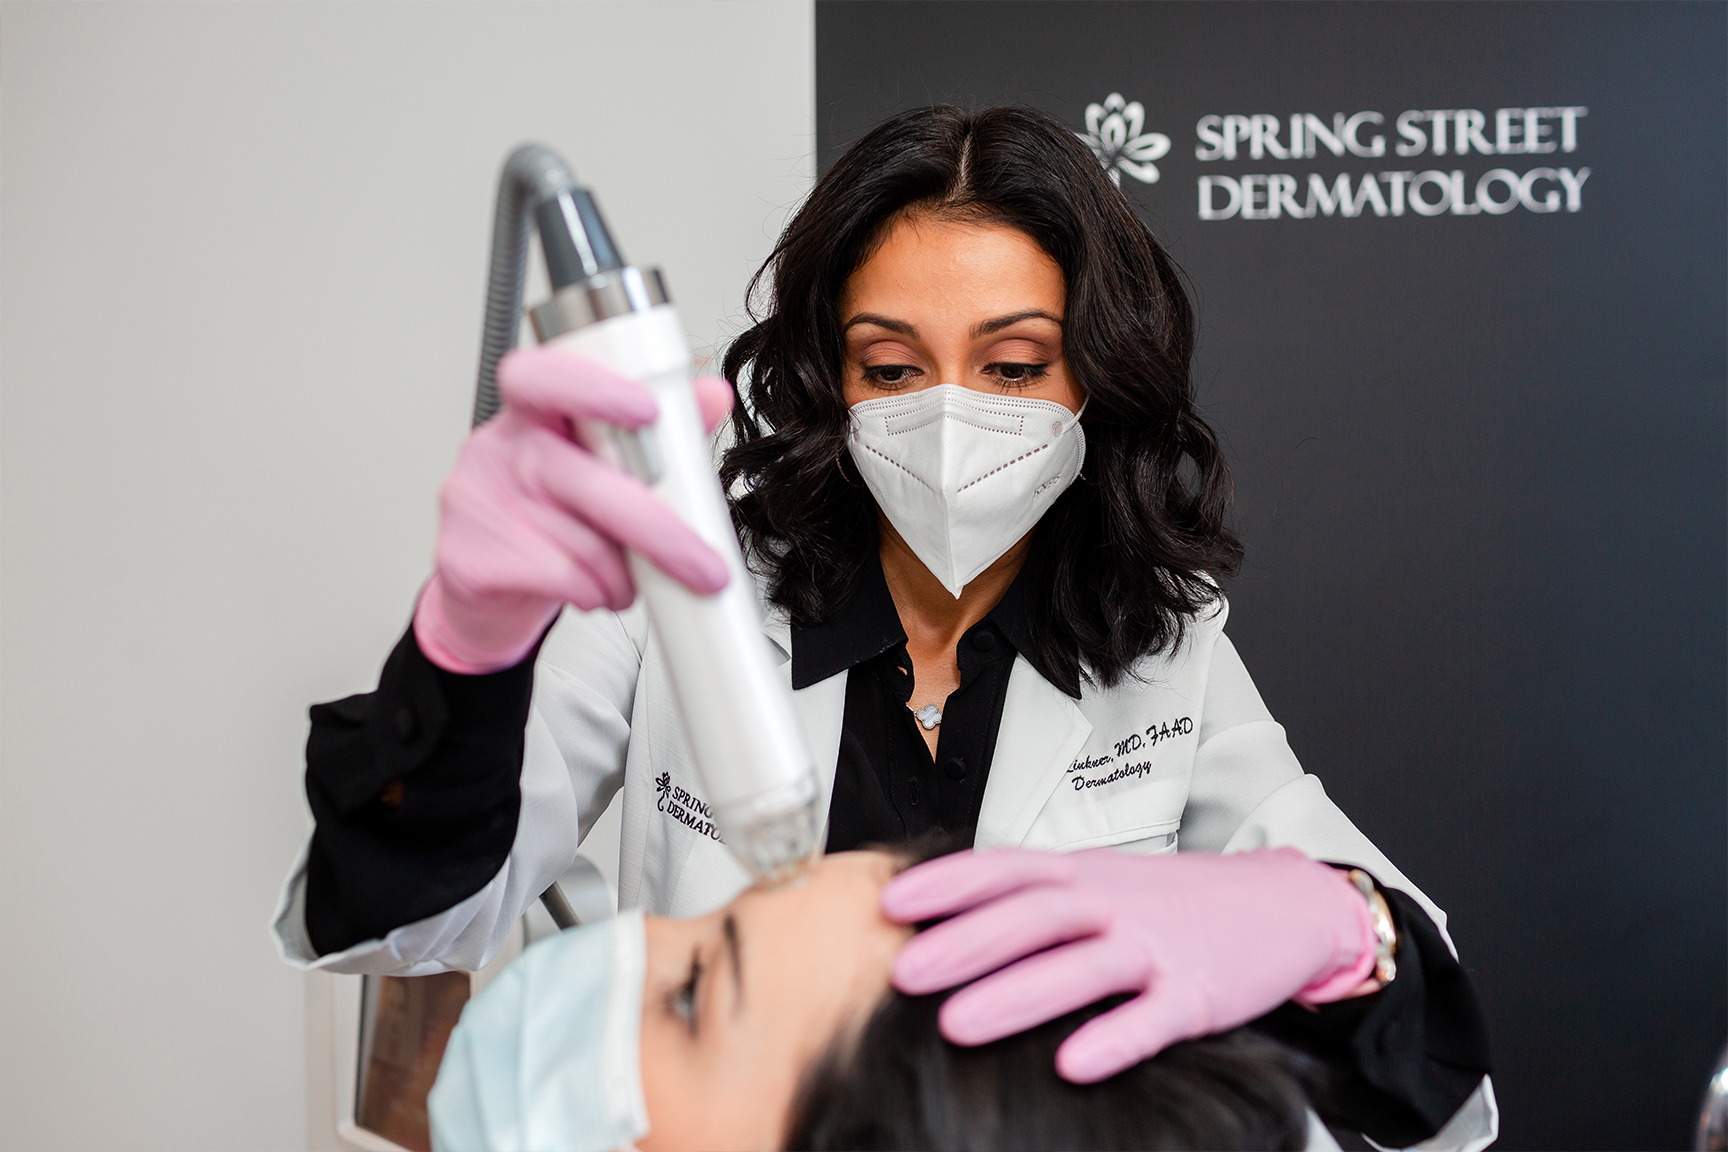 Microneedling treatment for forehead wrinkles